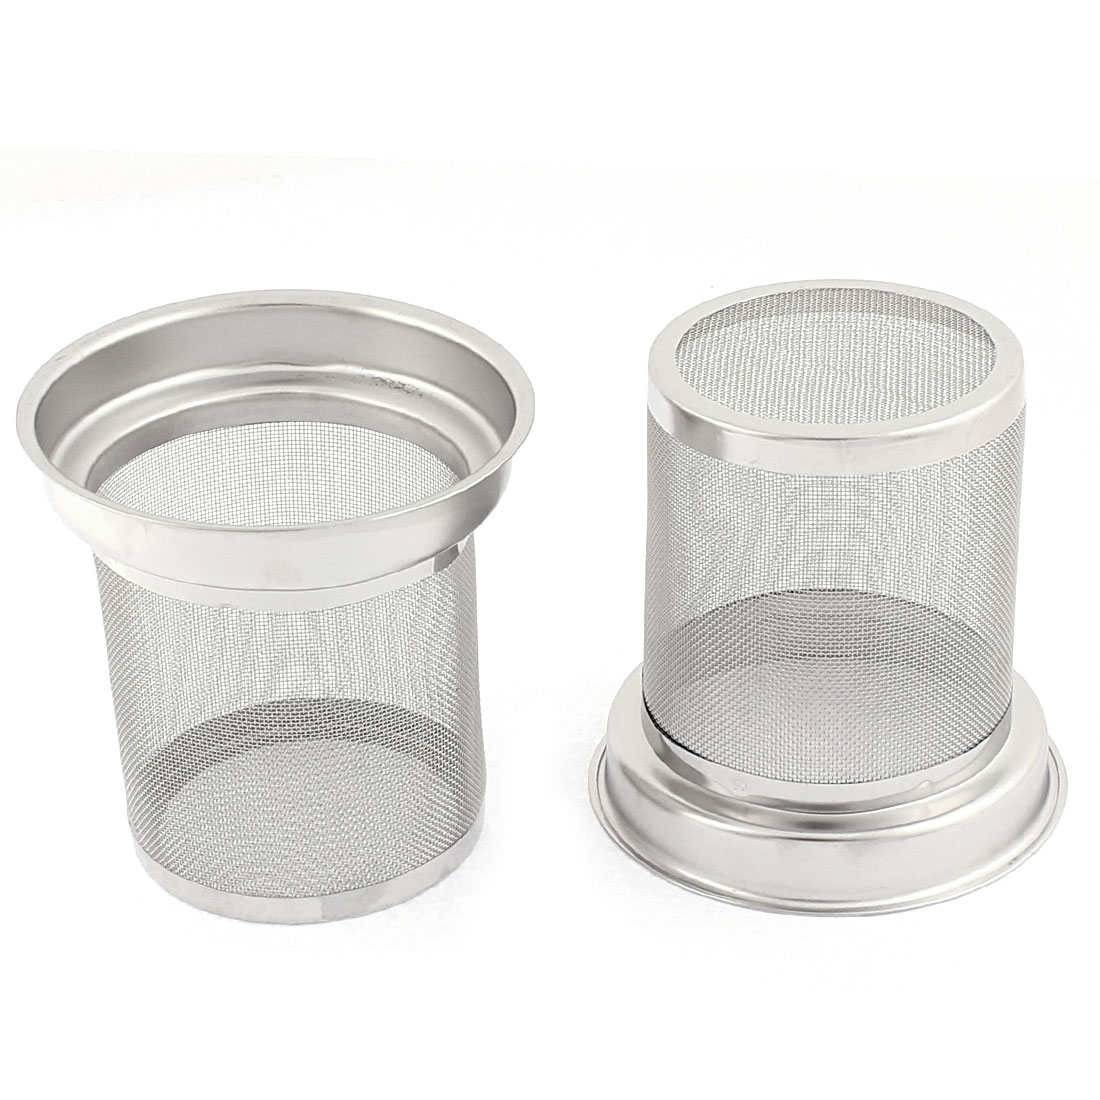 Tea Leaf Spice Stainless Steel Mesh Net Infuser Filter 2PCS